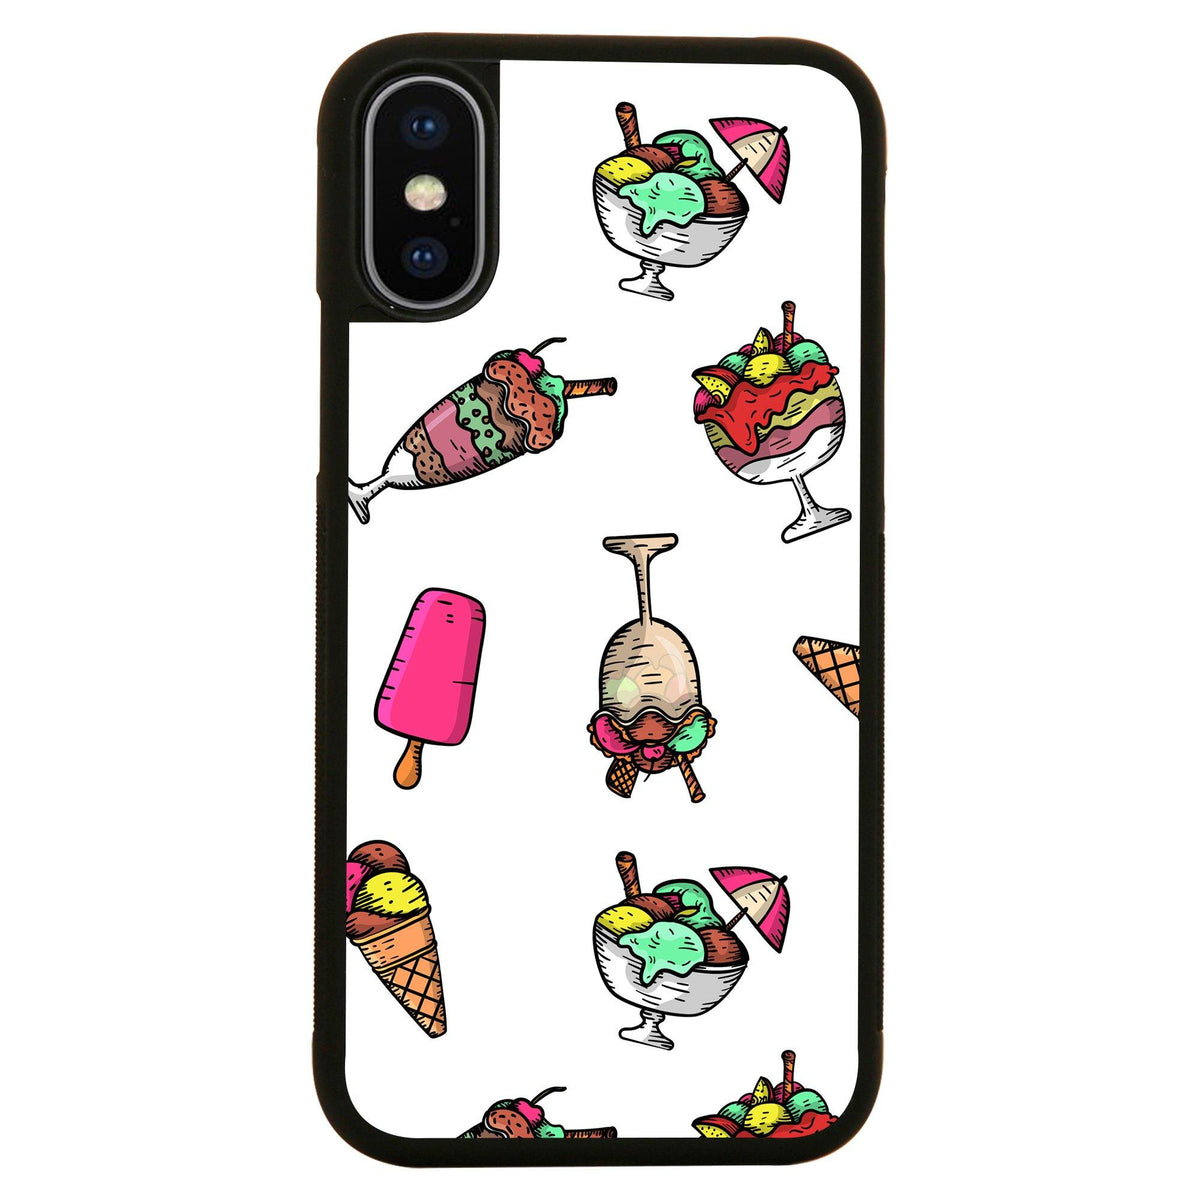 Cartoon Ice Cream Pattern Funny Illustration Design Iphone Case Cover 11 11pro Max Xs Xr X Graphic Gear